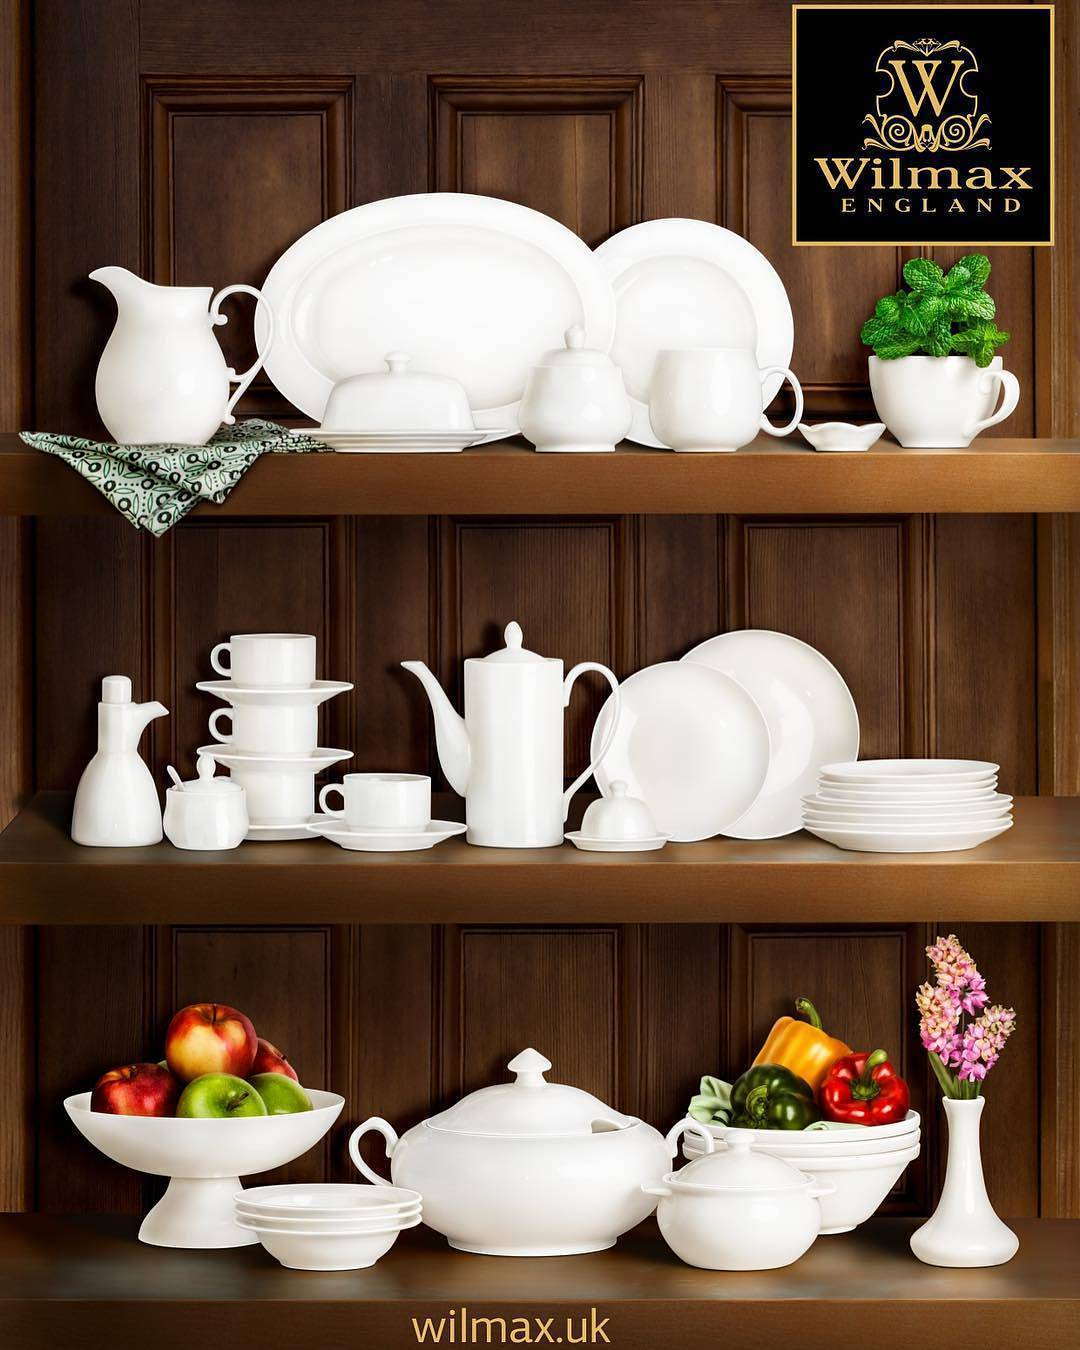 FINE PORCELAIN BOWL 8"